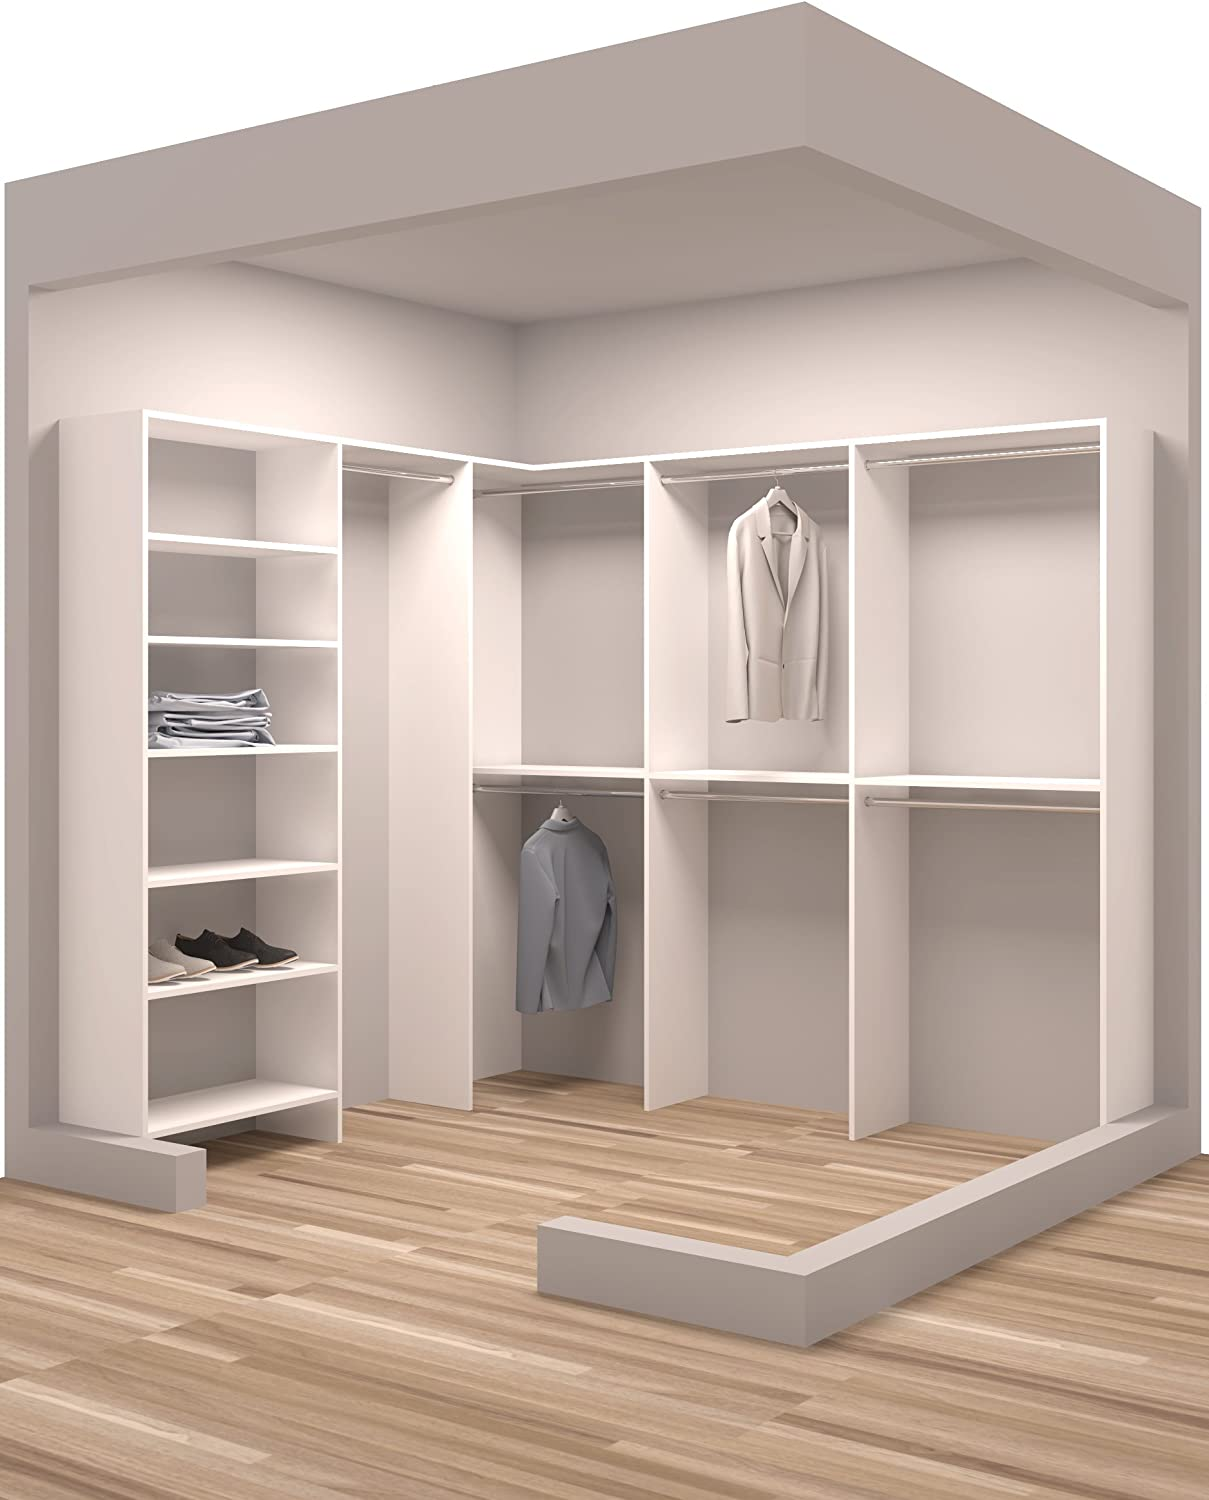 Tidy Squares Closet System – Easy to Assemble - Walk in, Adjustable Shelves, Multiple Size Hanger Racks – Perfect Idea for Extra Storage - Custom Closet Organizer Kit, White